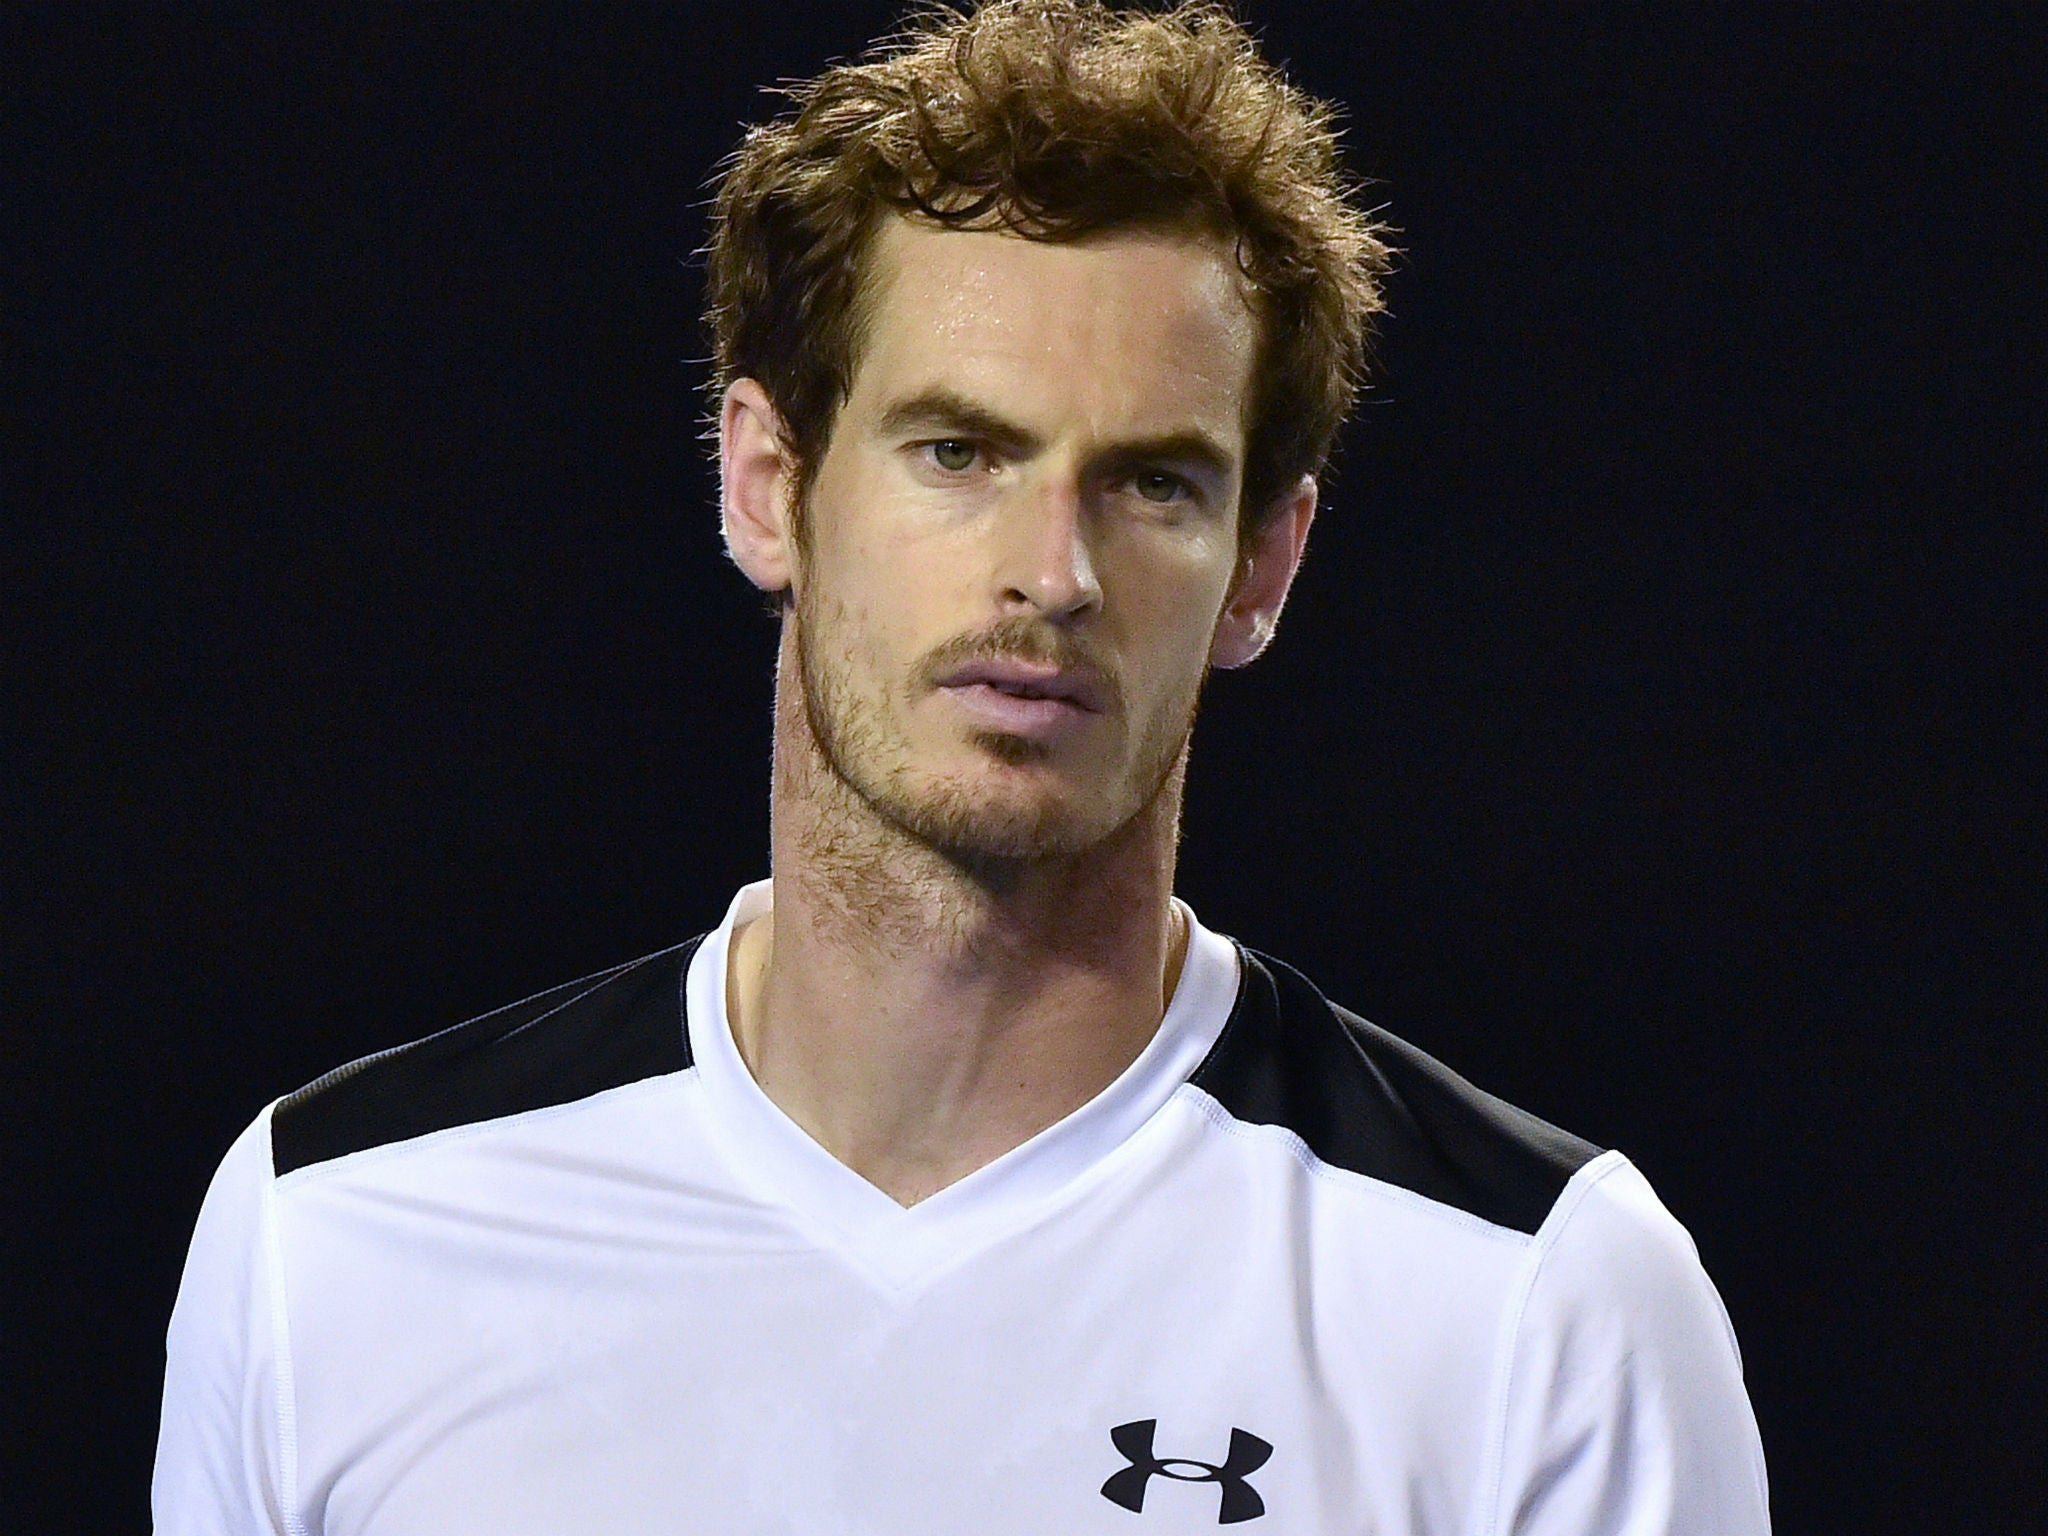 andy murray - photo #36